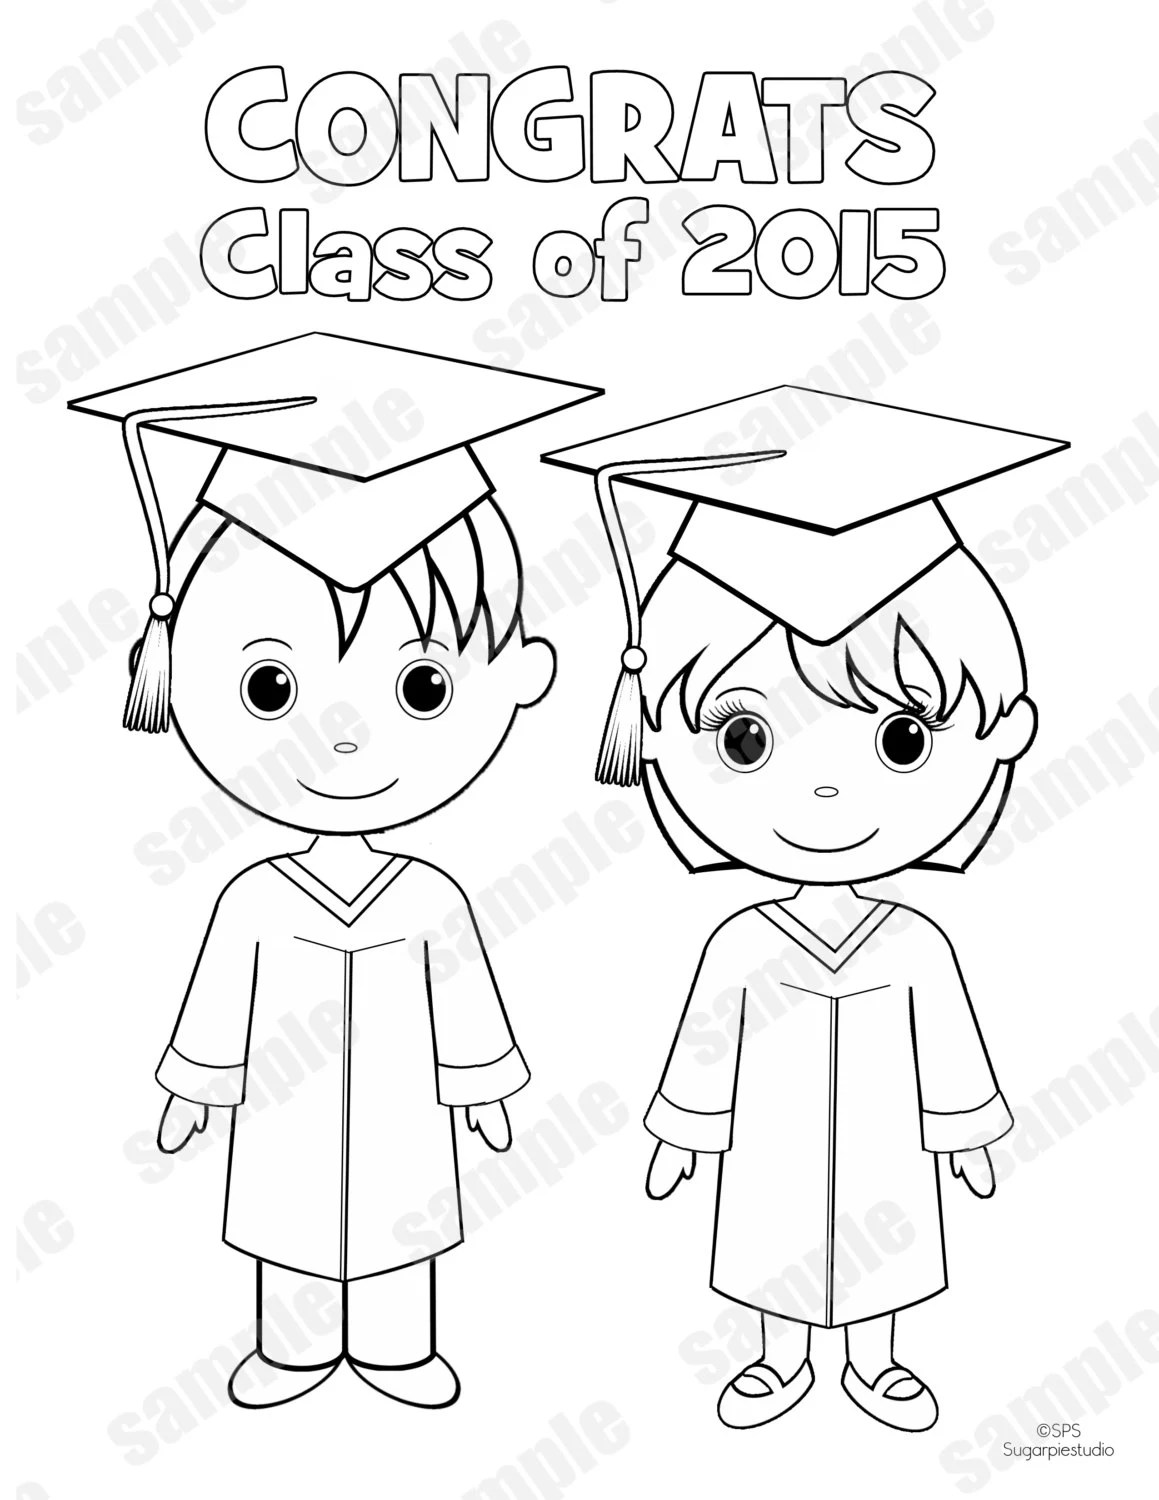 Handmade kindergarten graduation favors